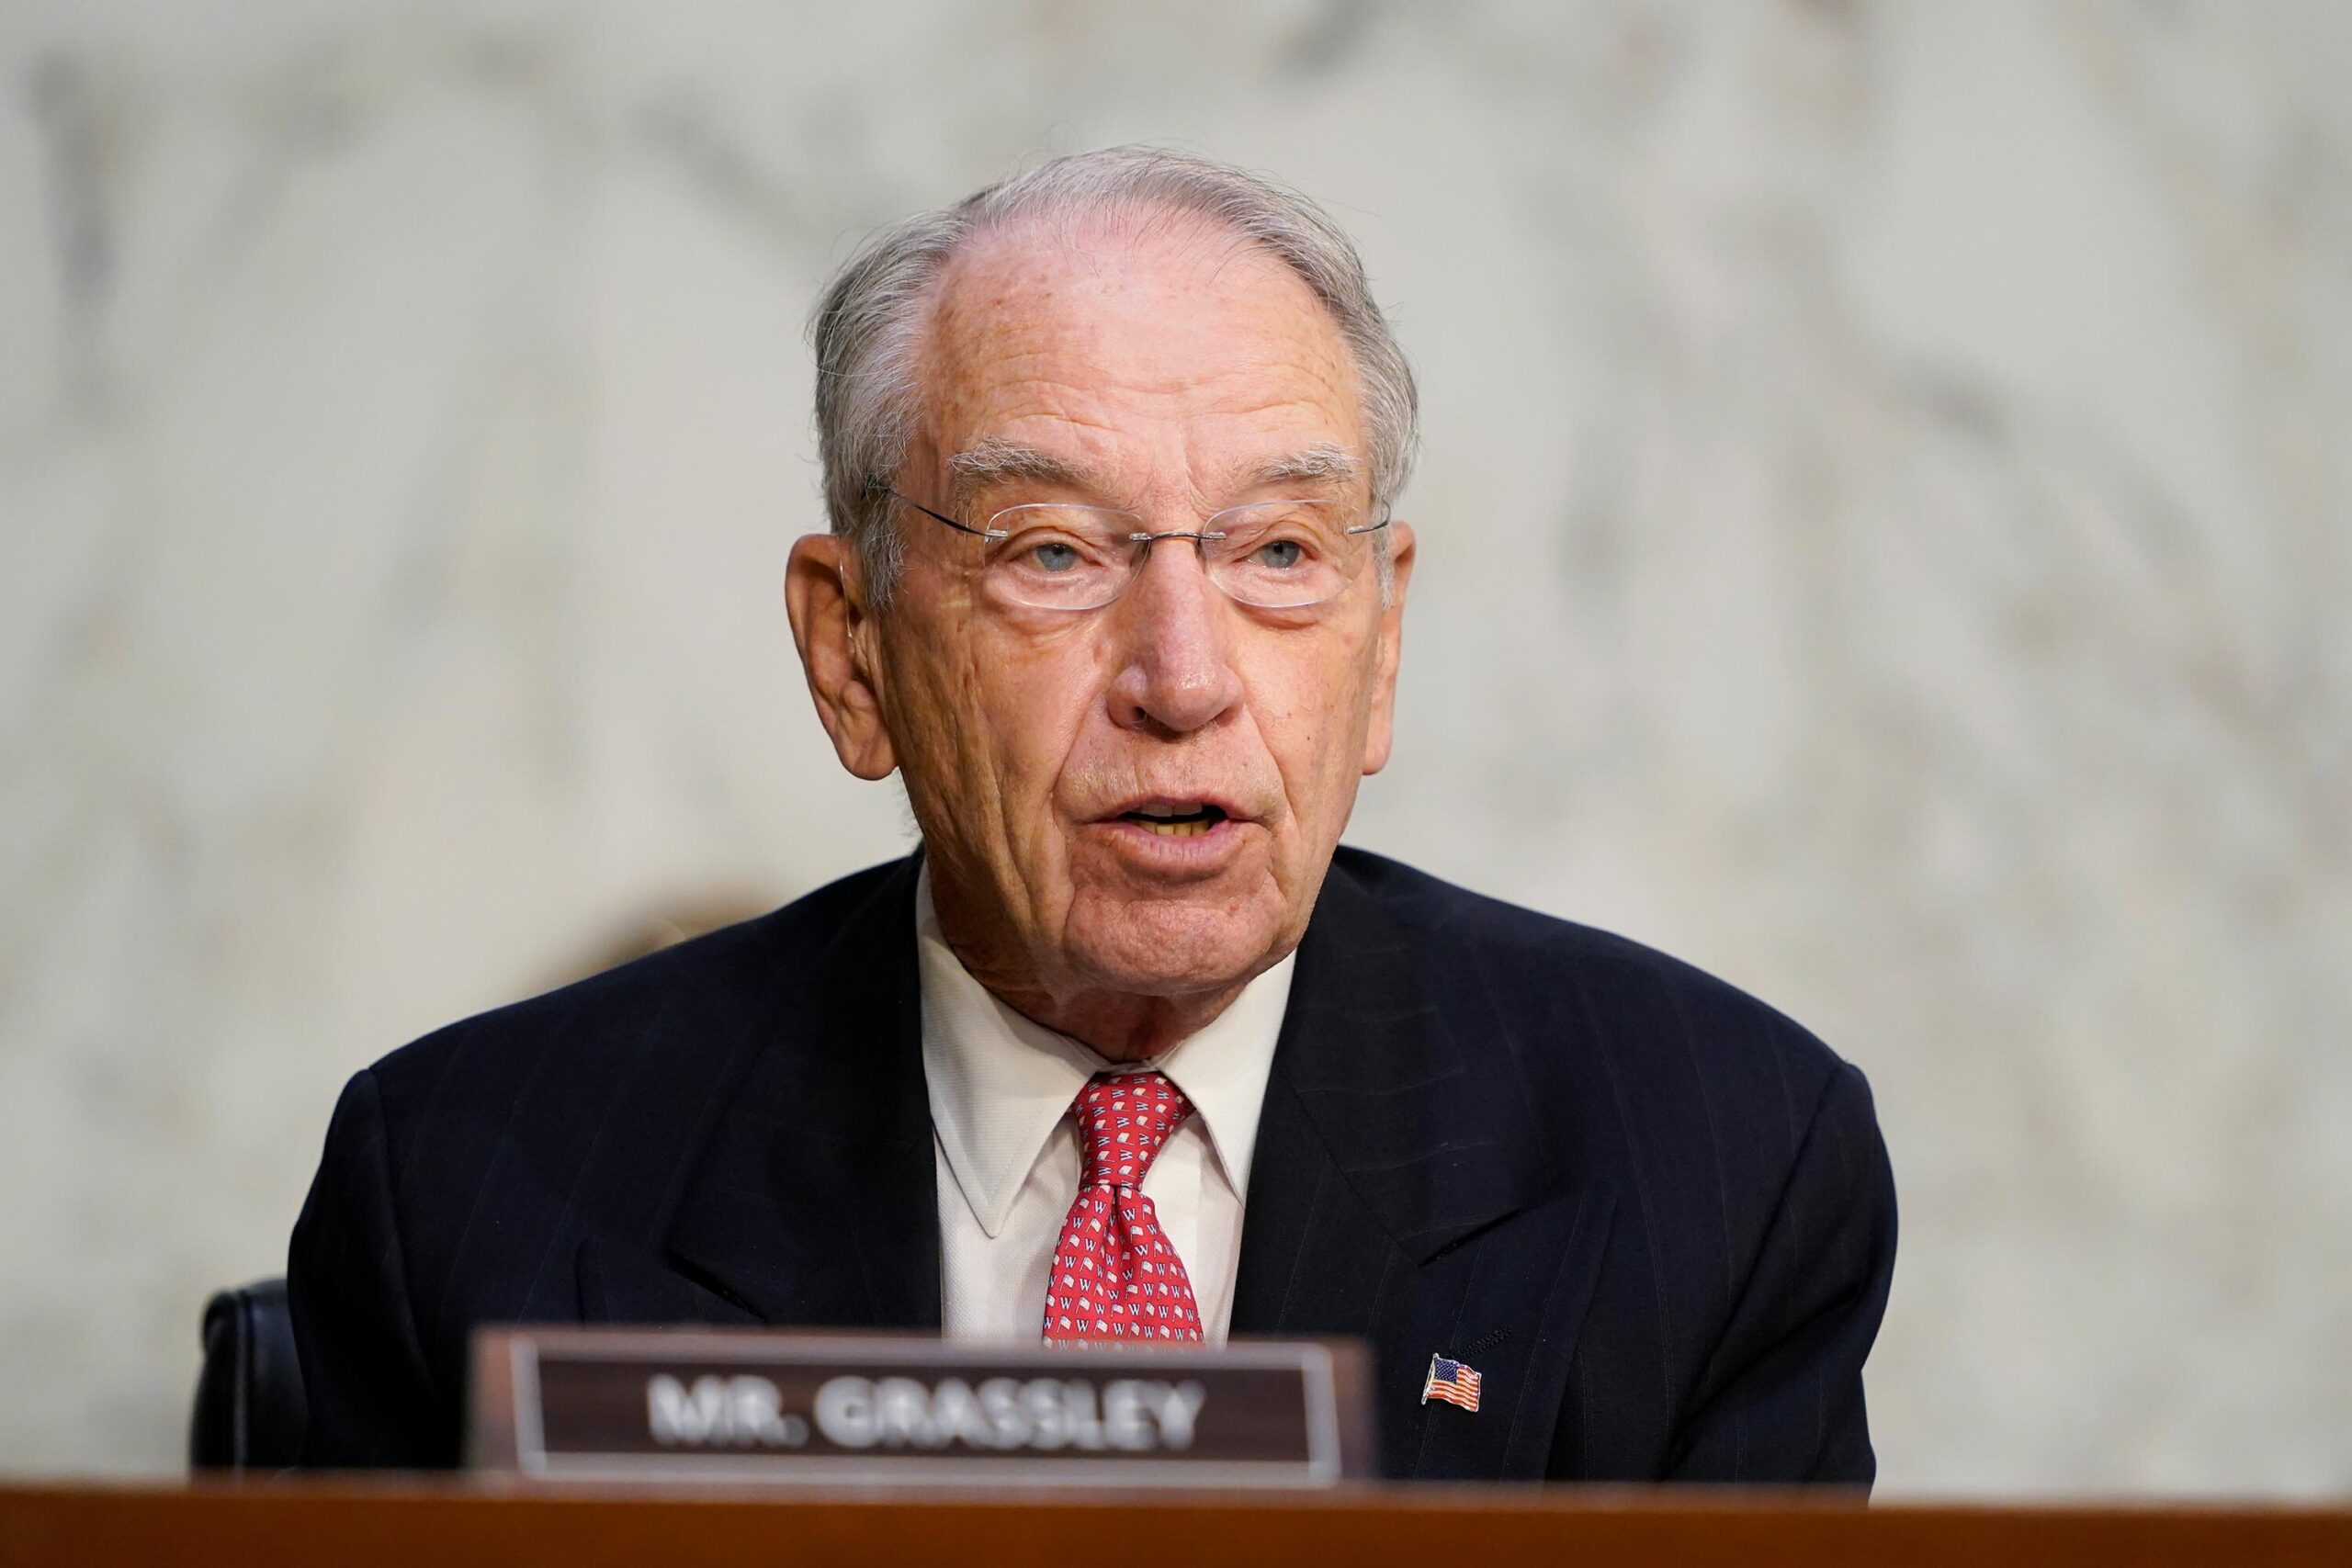 <i>Susan Walsh/Pool/Getty Images</i><br/>Sen. Chuck Grassley (R-IA) announced on Friday that he will run for reelection next year.